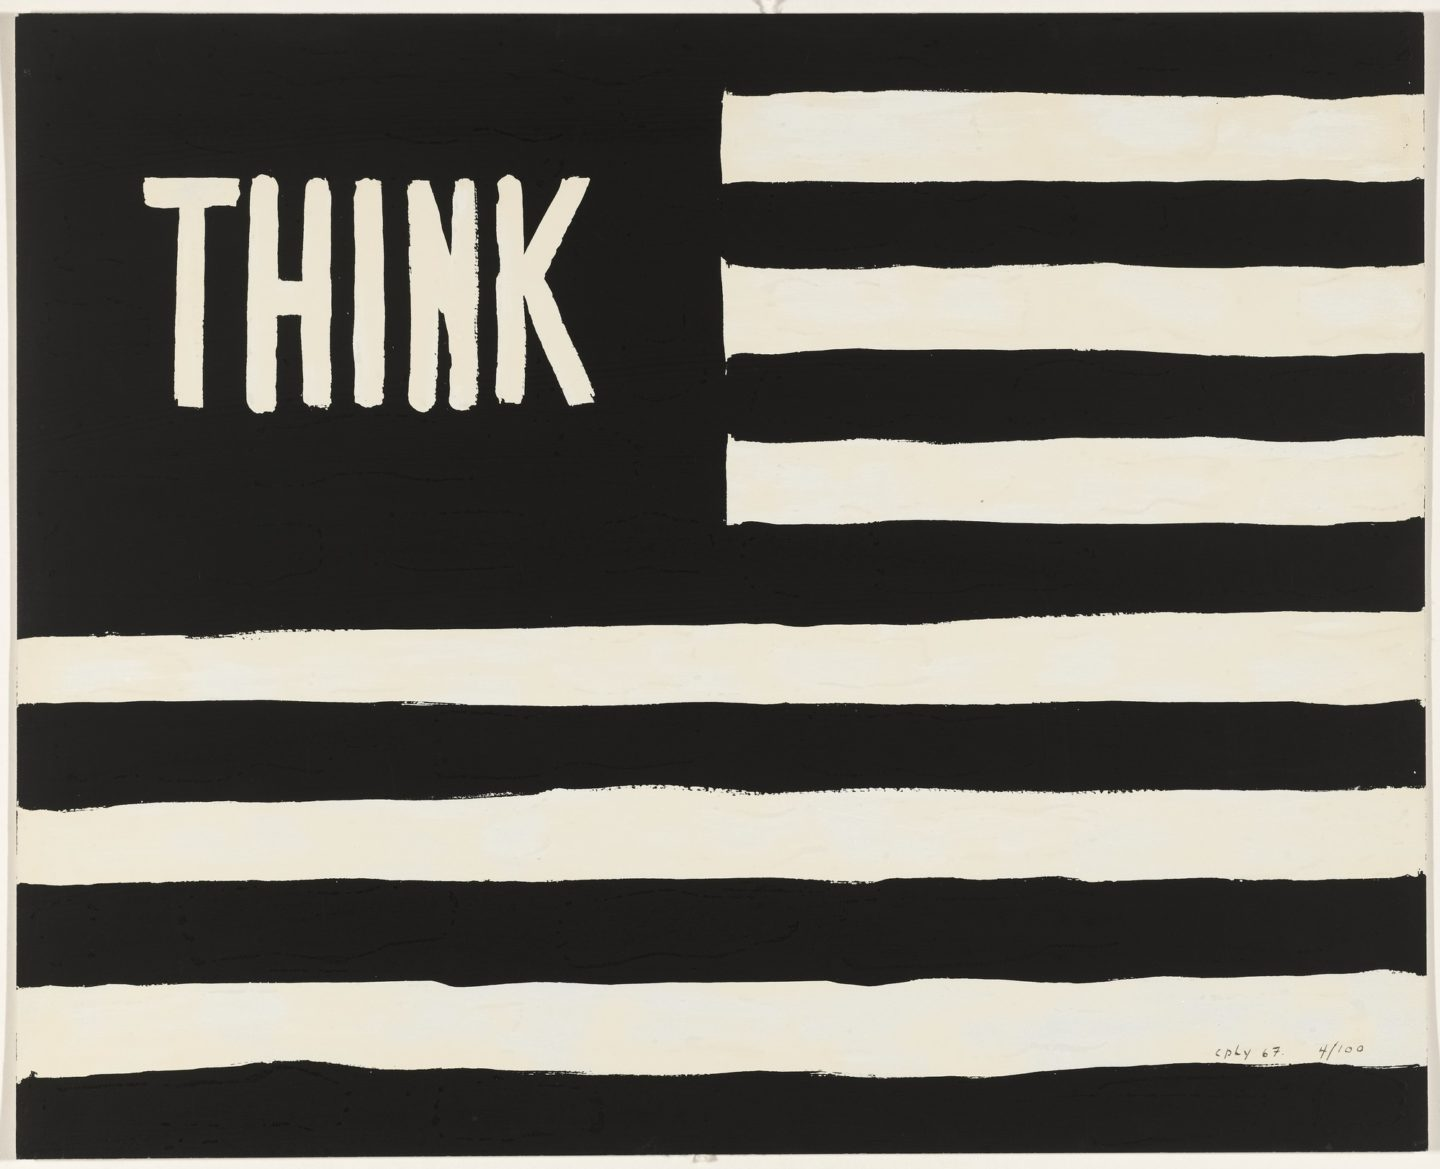 William Copley, Think, 1967